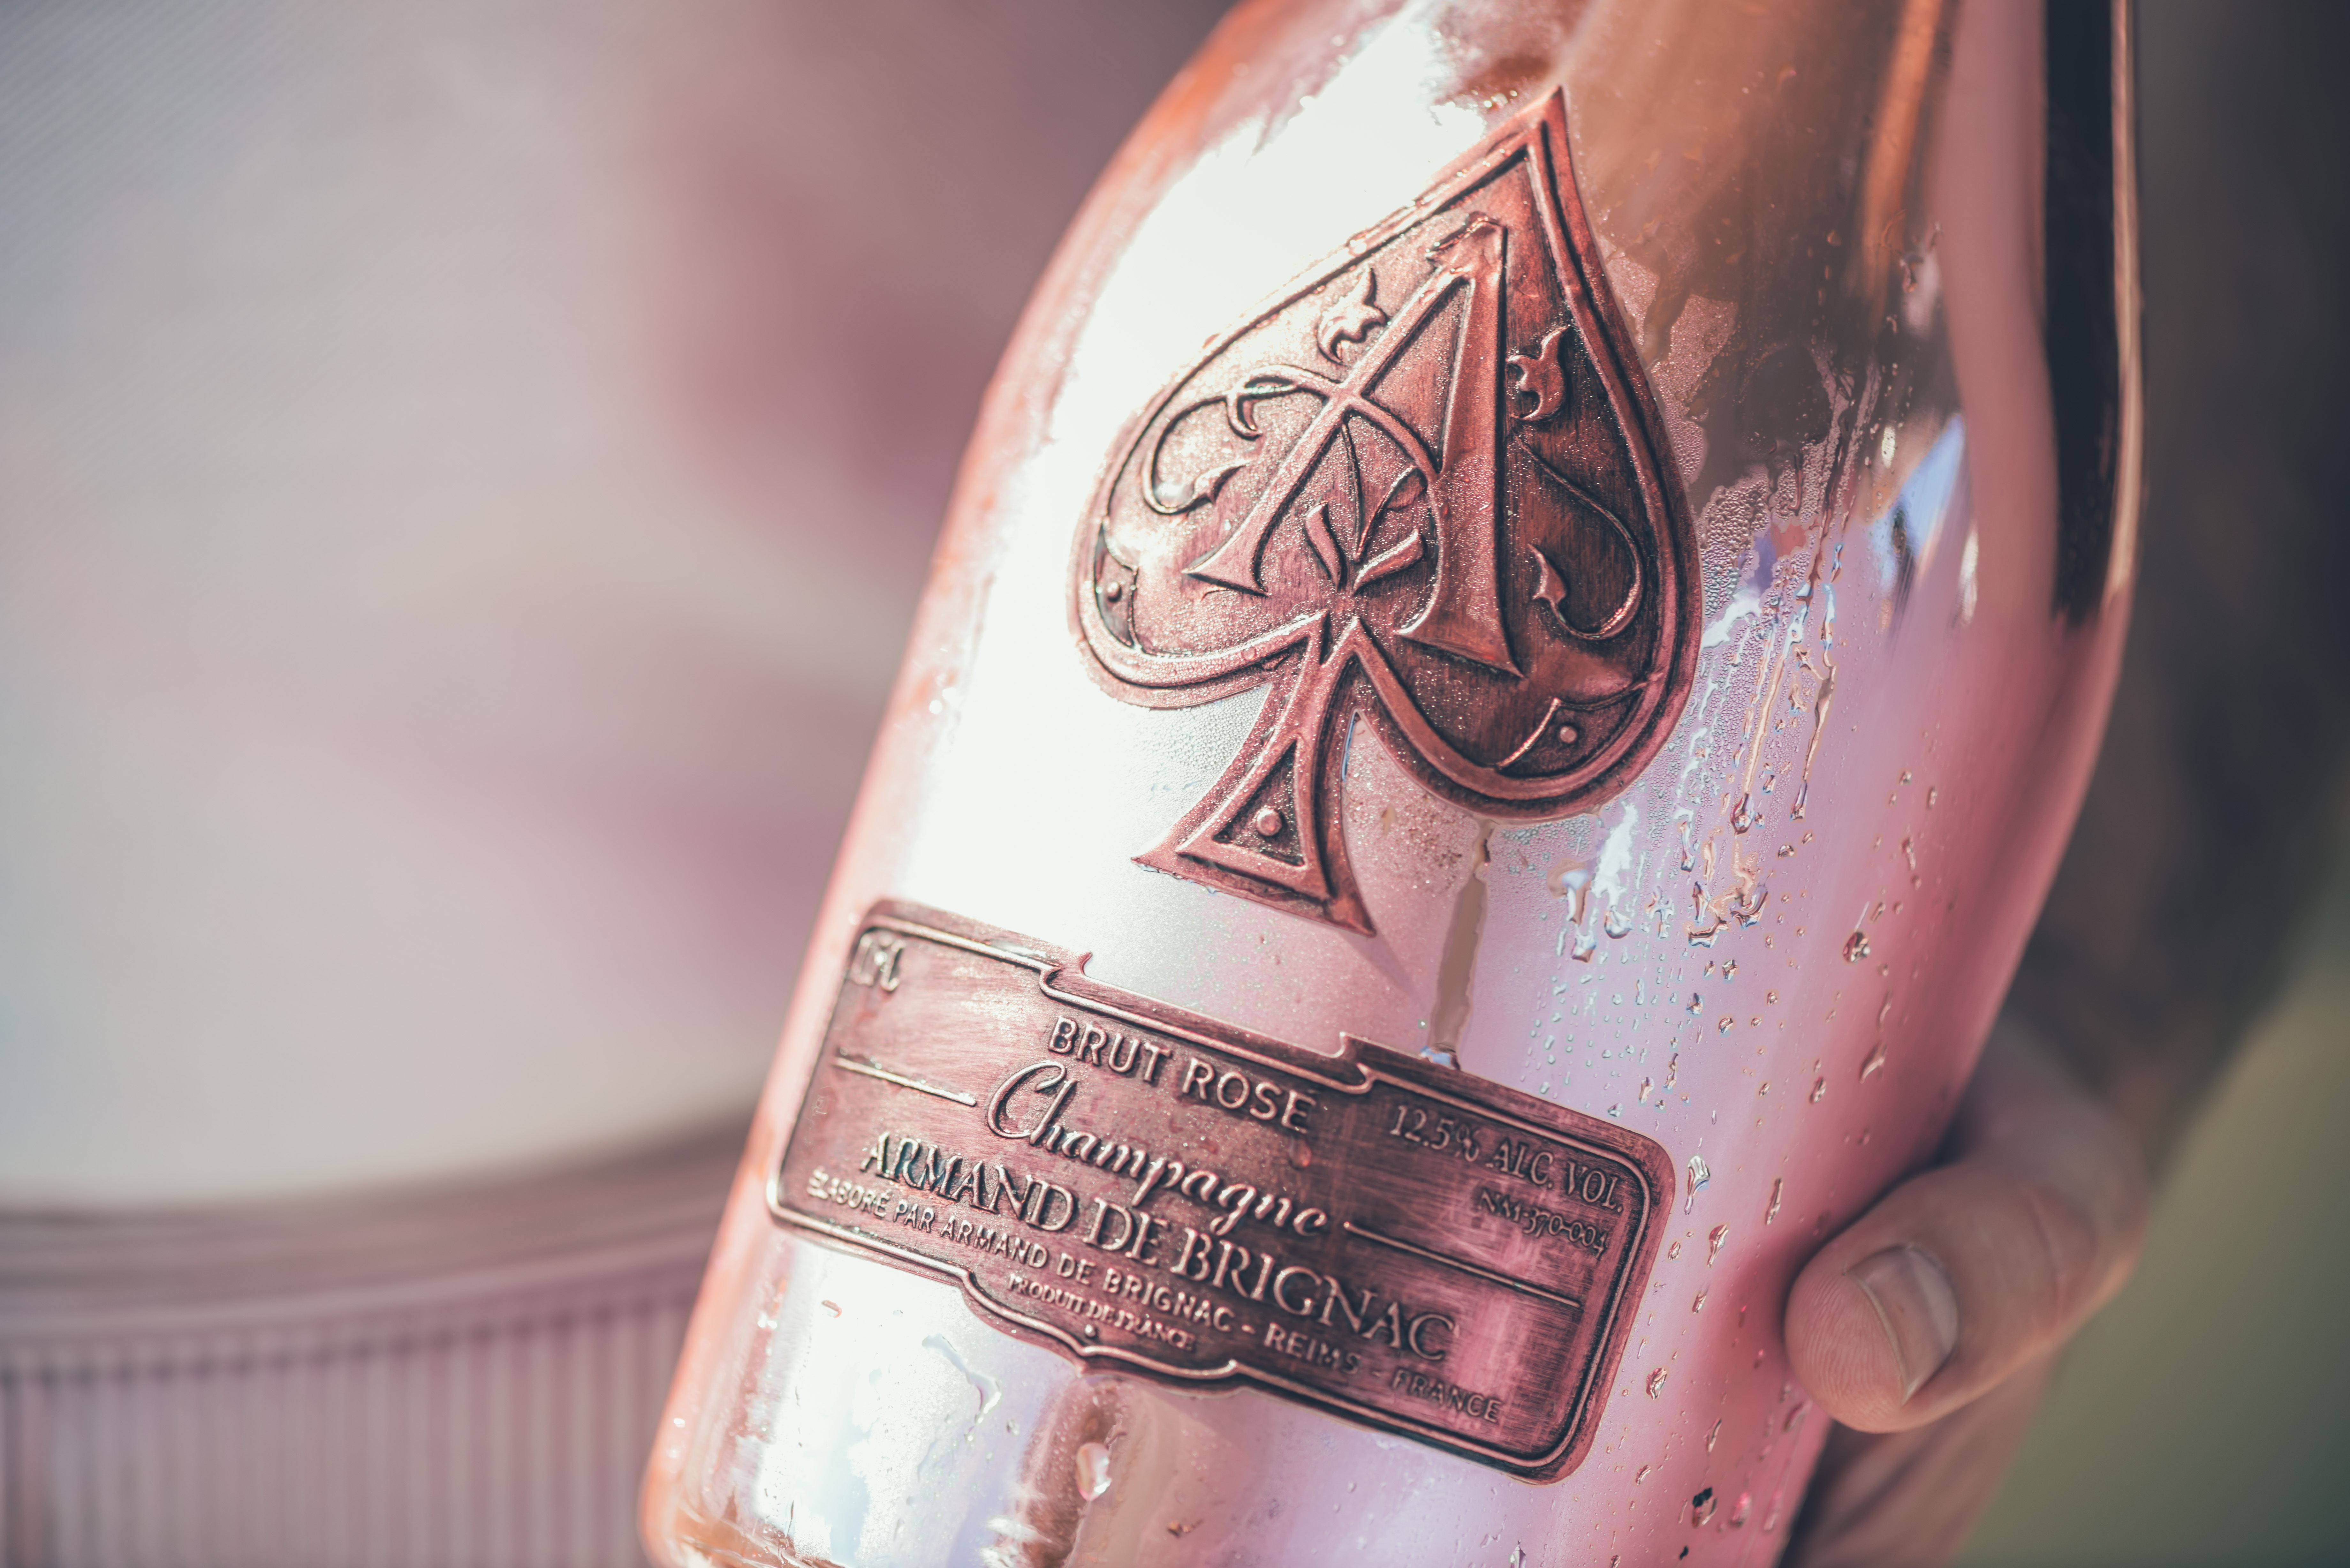 Armand de Brignac Rosé awarded Best Rosé Champagne of the World in the 2017 Best Wine of the World Competition